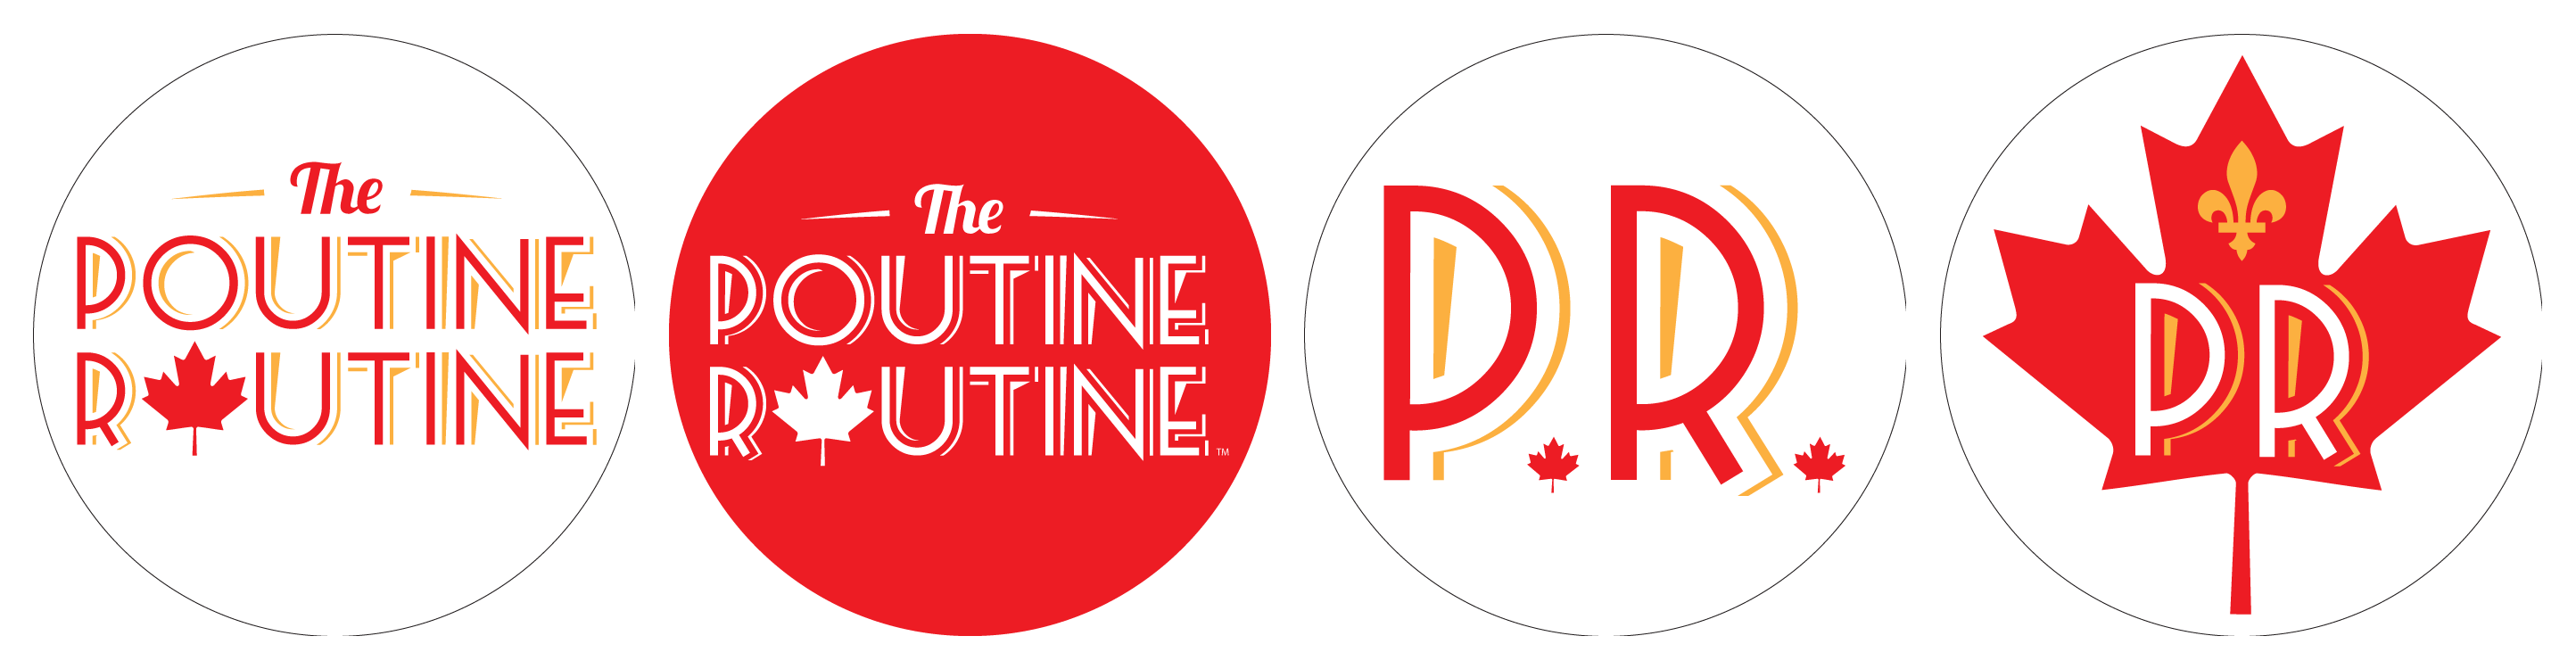 Pins for THE POUTINE ROUTINE